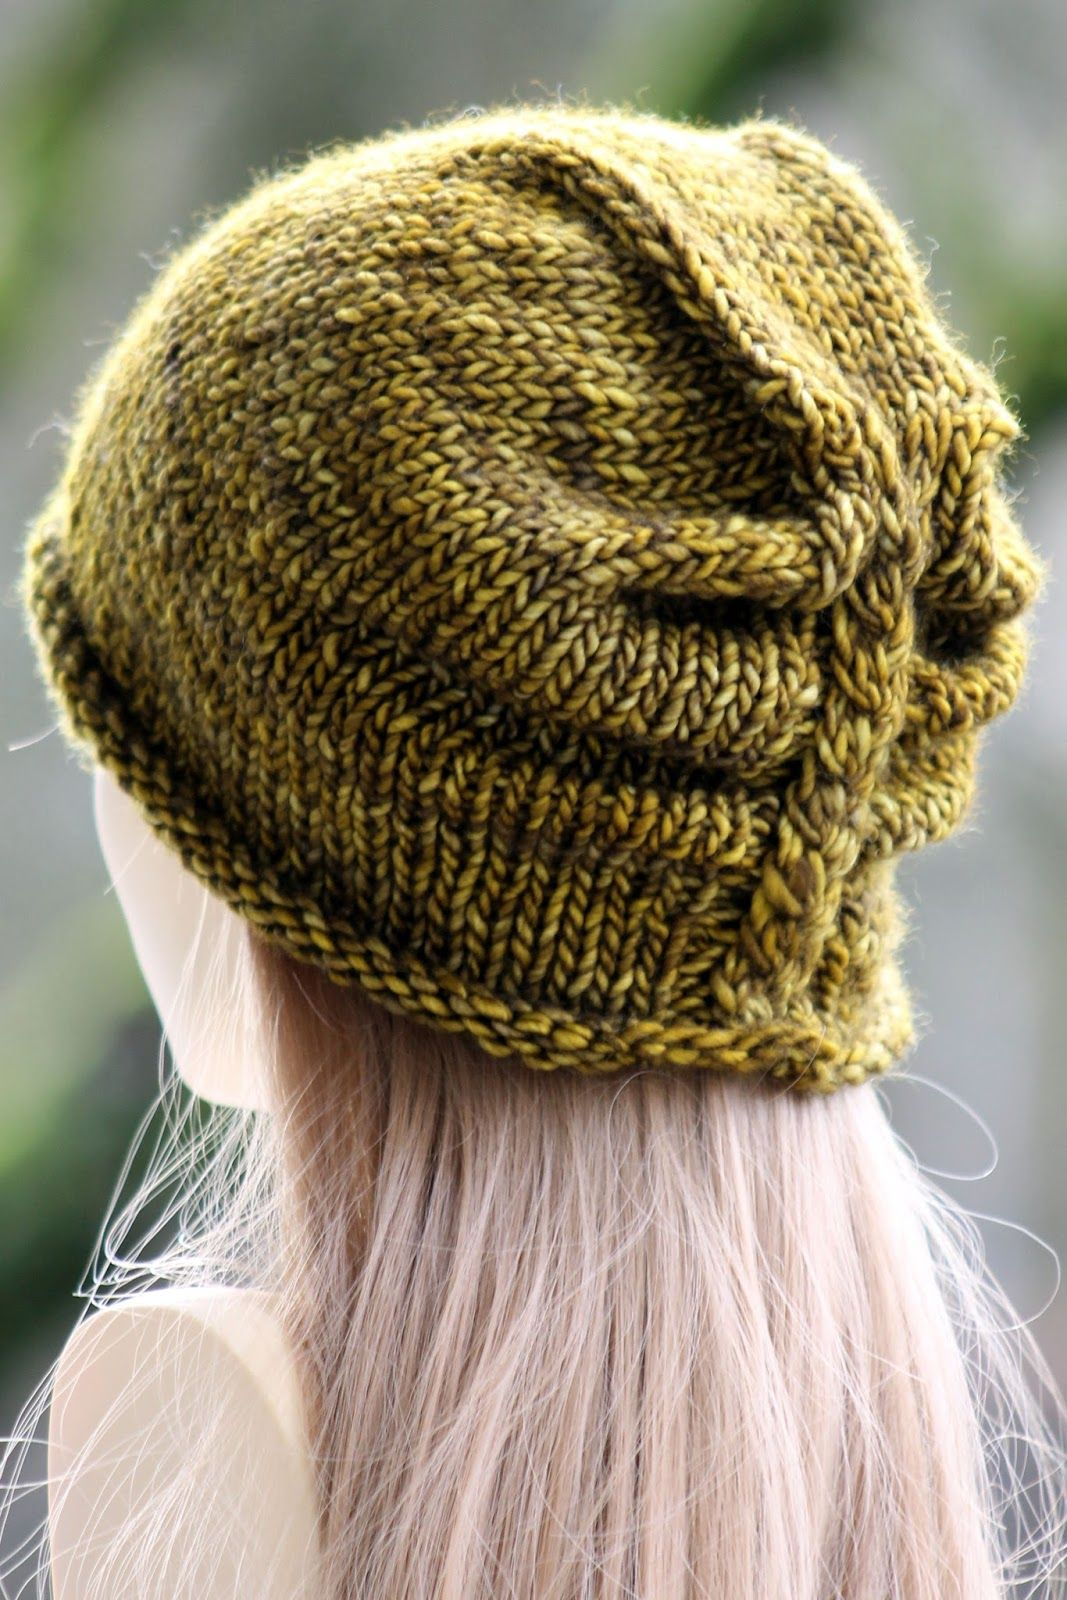 Im lichen this hat balls to the walls knits a collection of free im lichen this hat balls to the walls knits a collection of free one and two skein knitting patterns i love this free pattern for a knit slouchy hat bankloansurffo Image collections